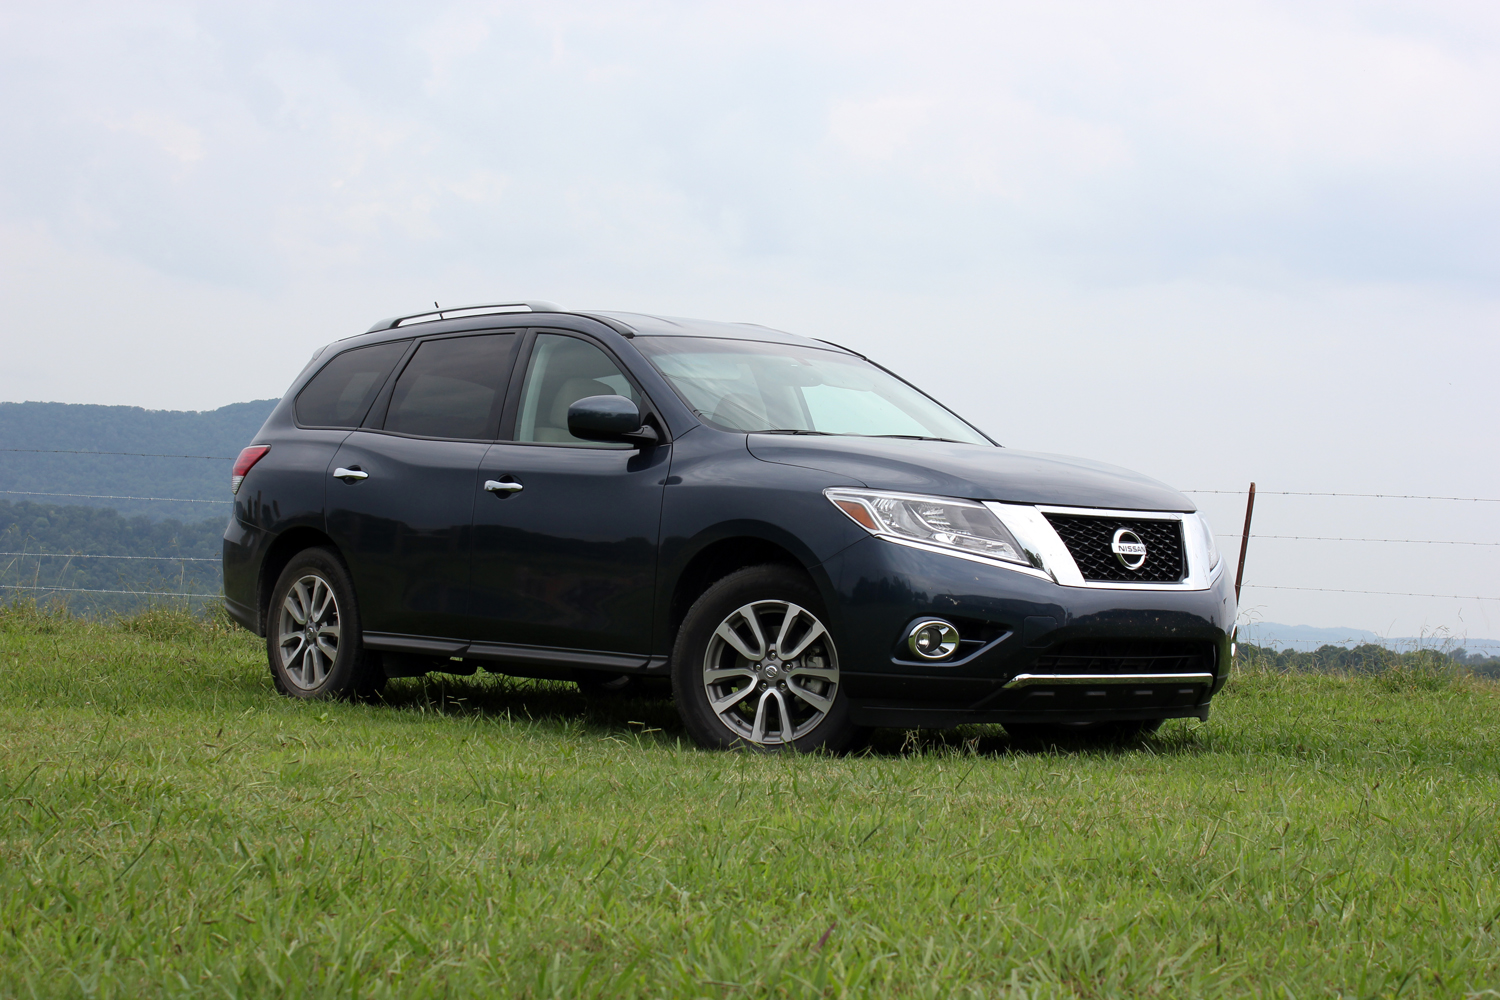 2019 Nissan Pathfinder | Car Photos Catalog 2019